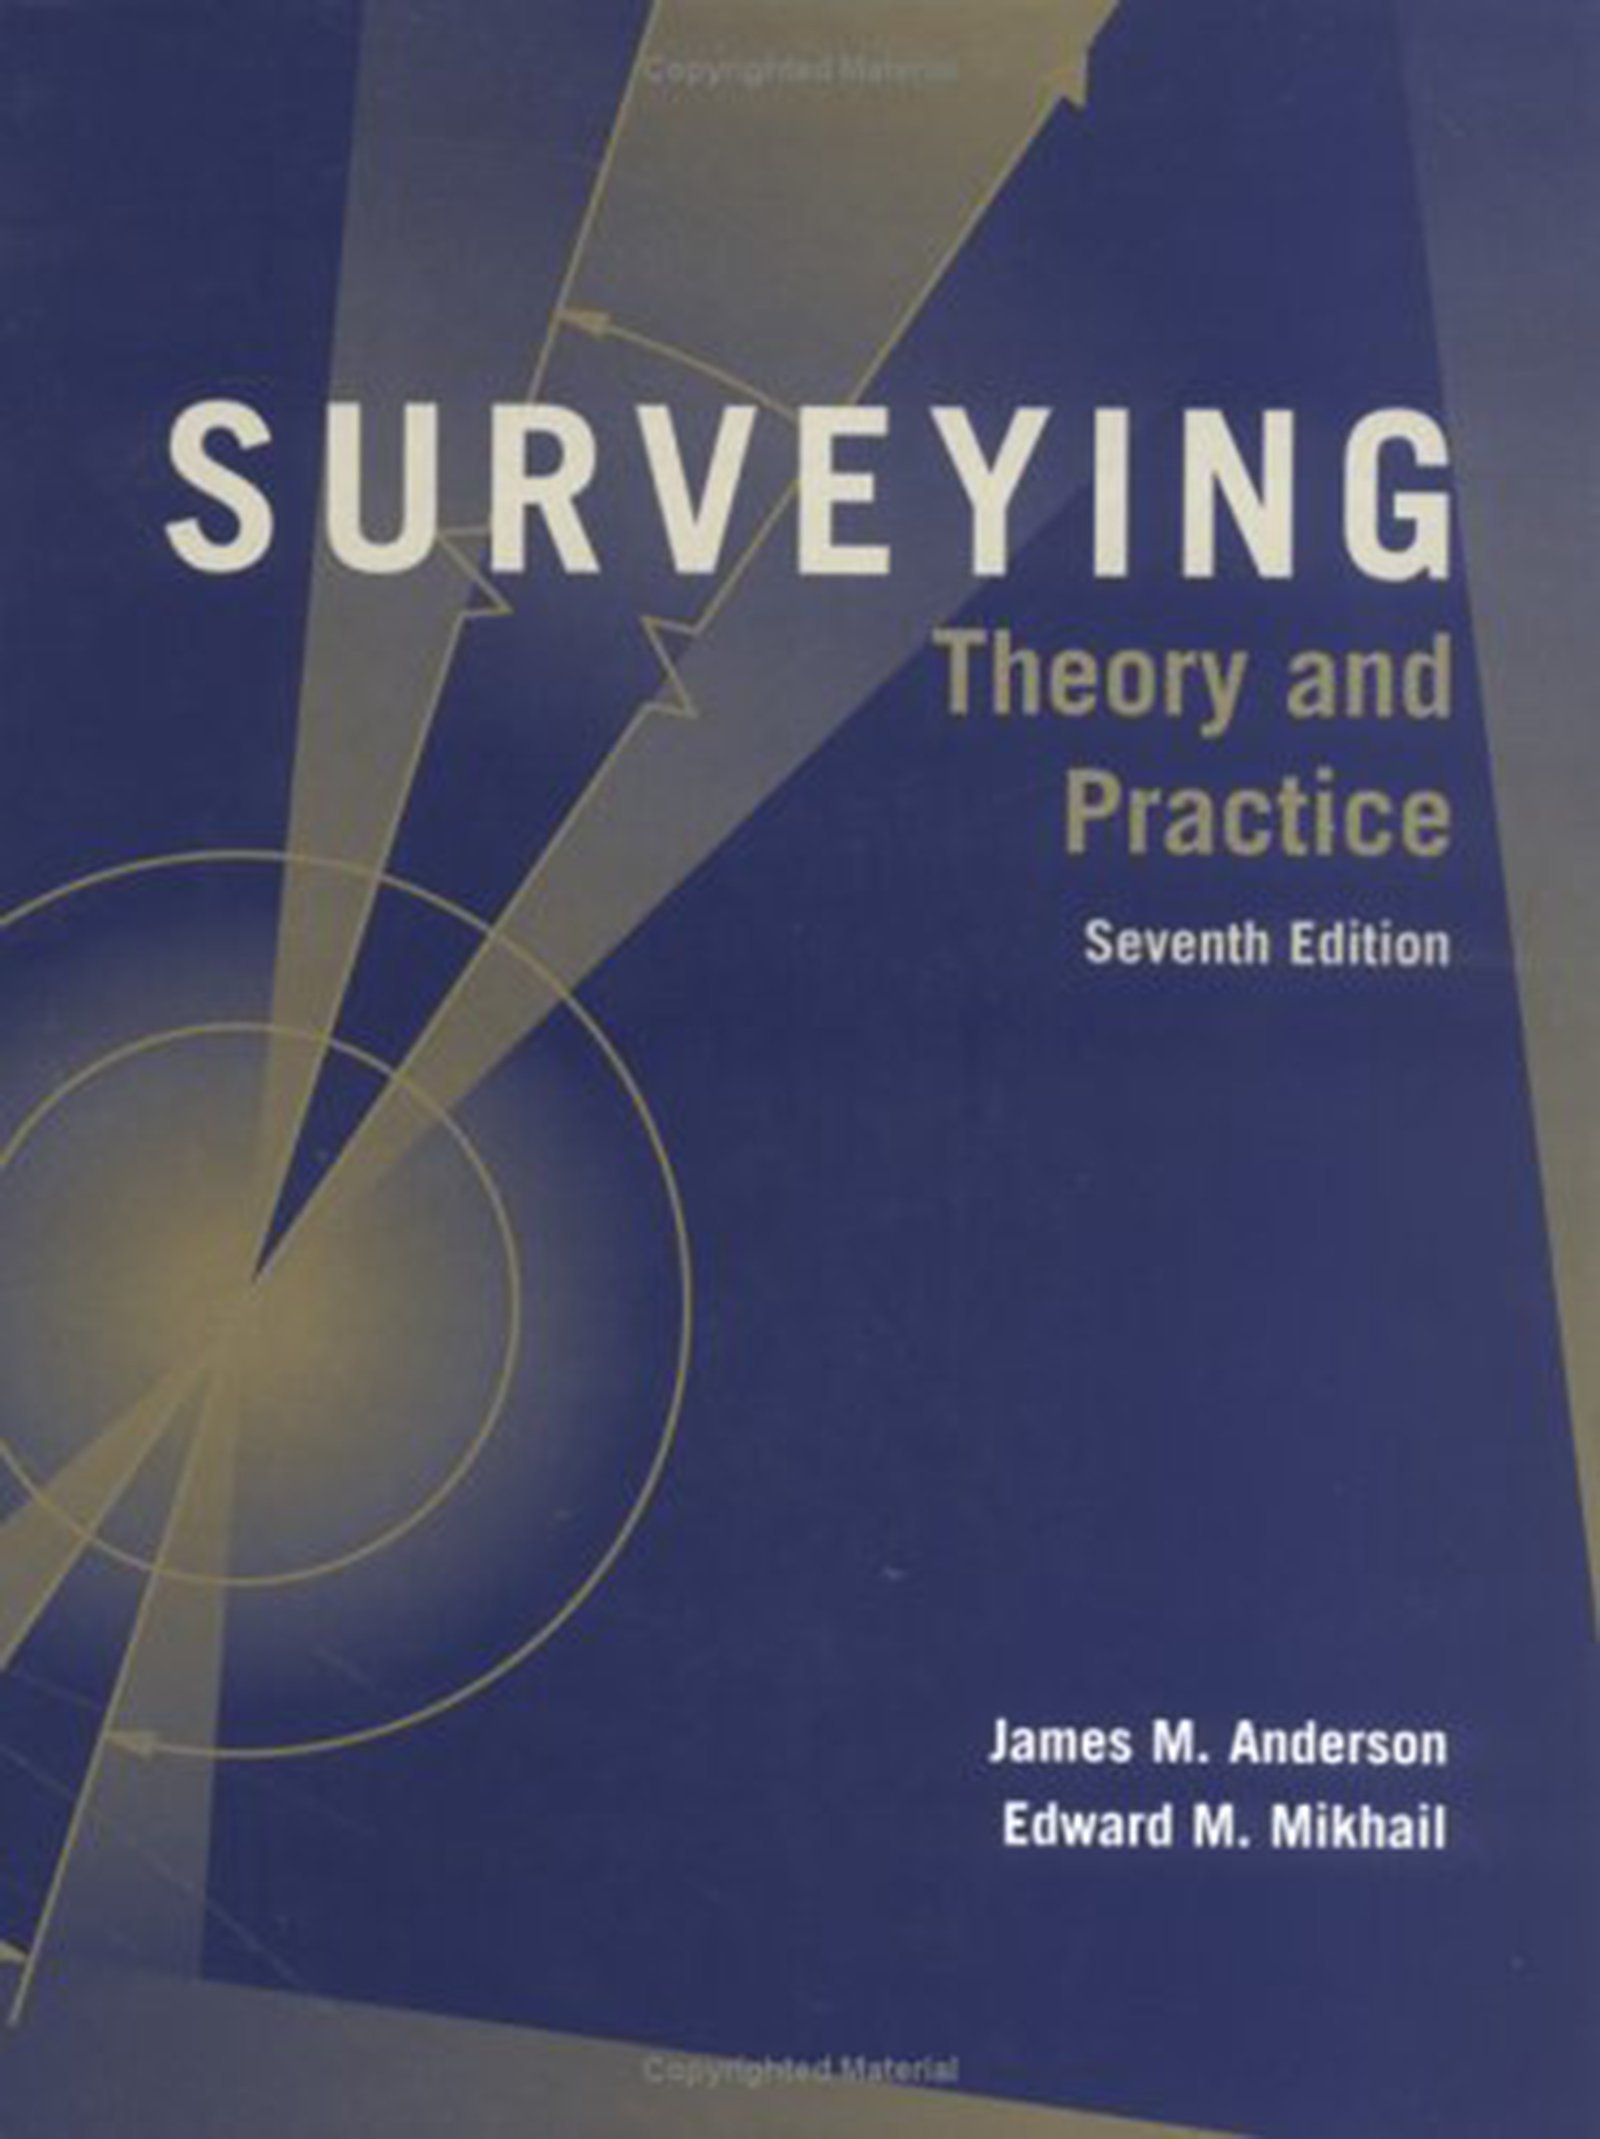 Surveying: Theory and Practice by James M. Anderson